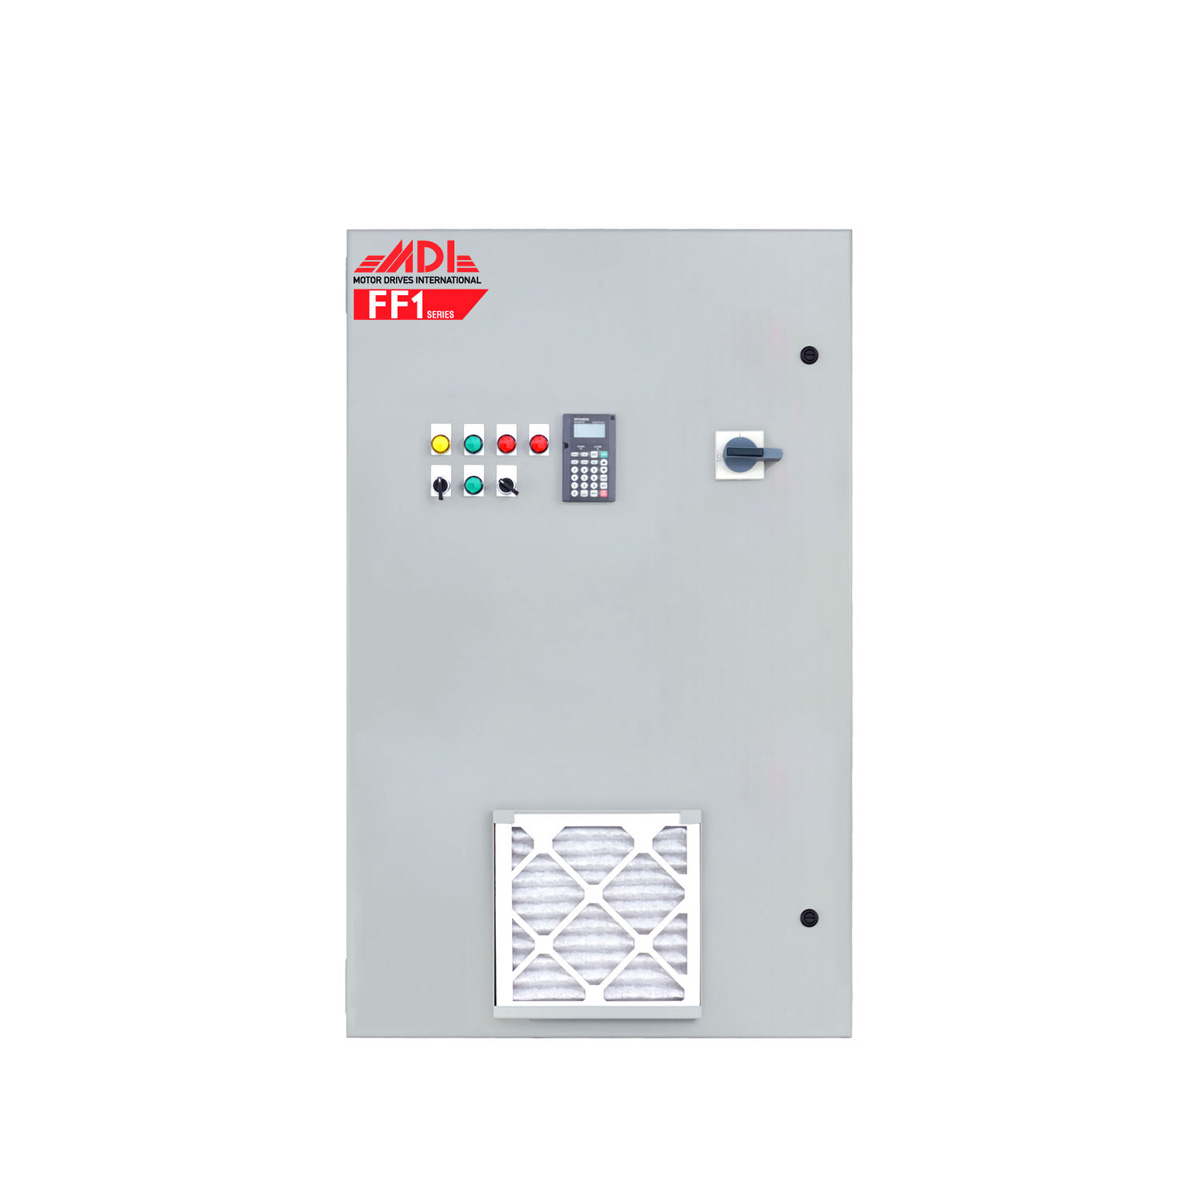 Mdi vfd panel ff1 for How to select vfd for a motor